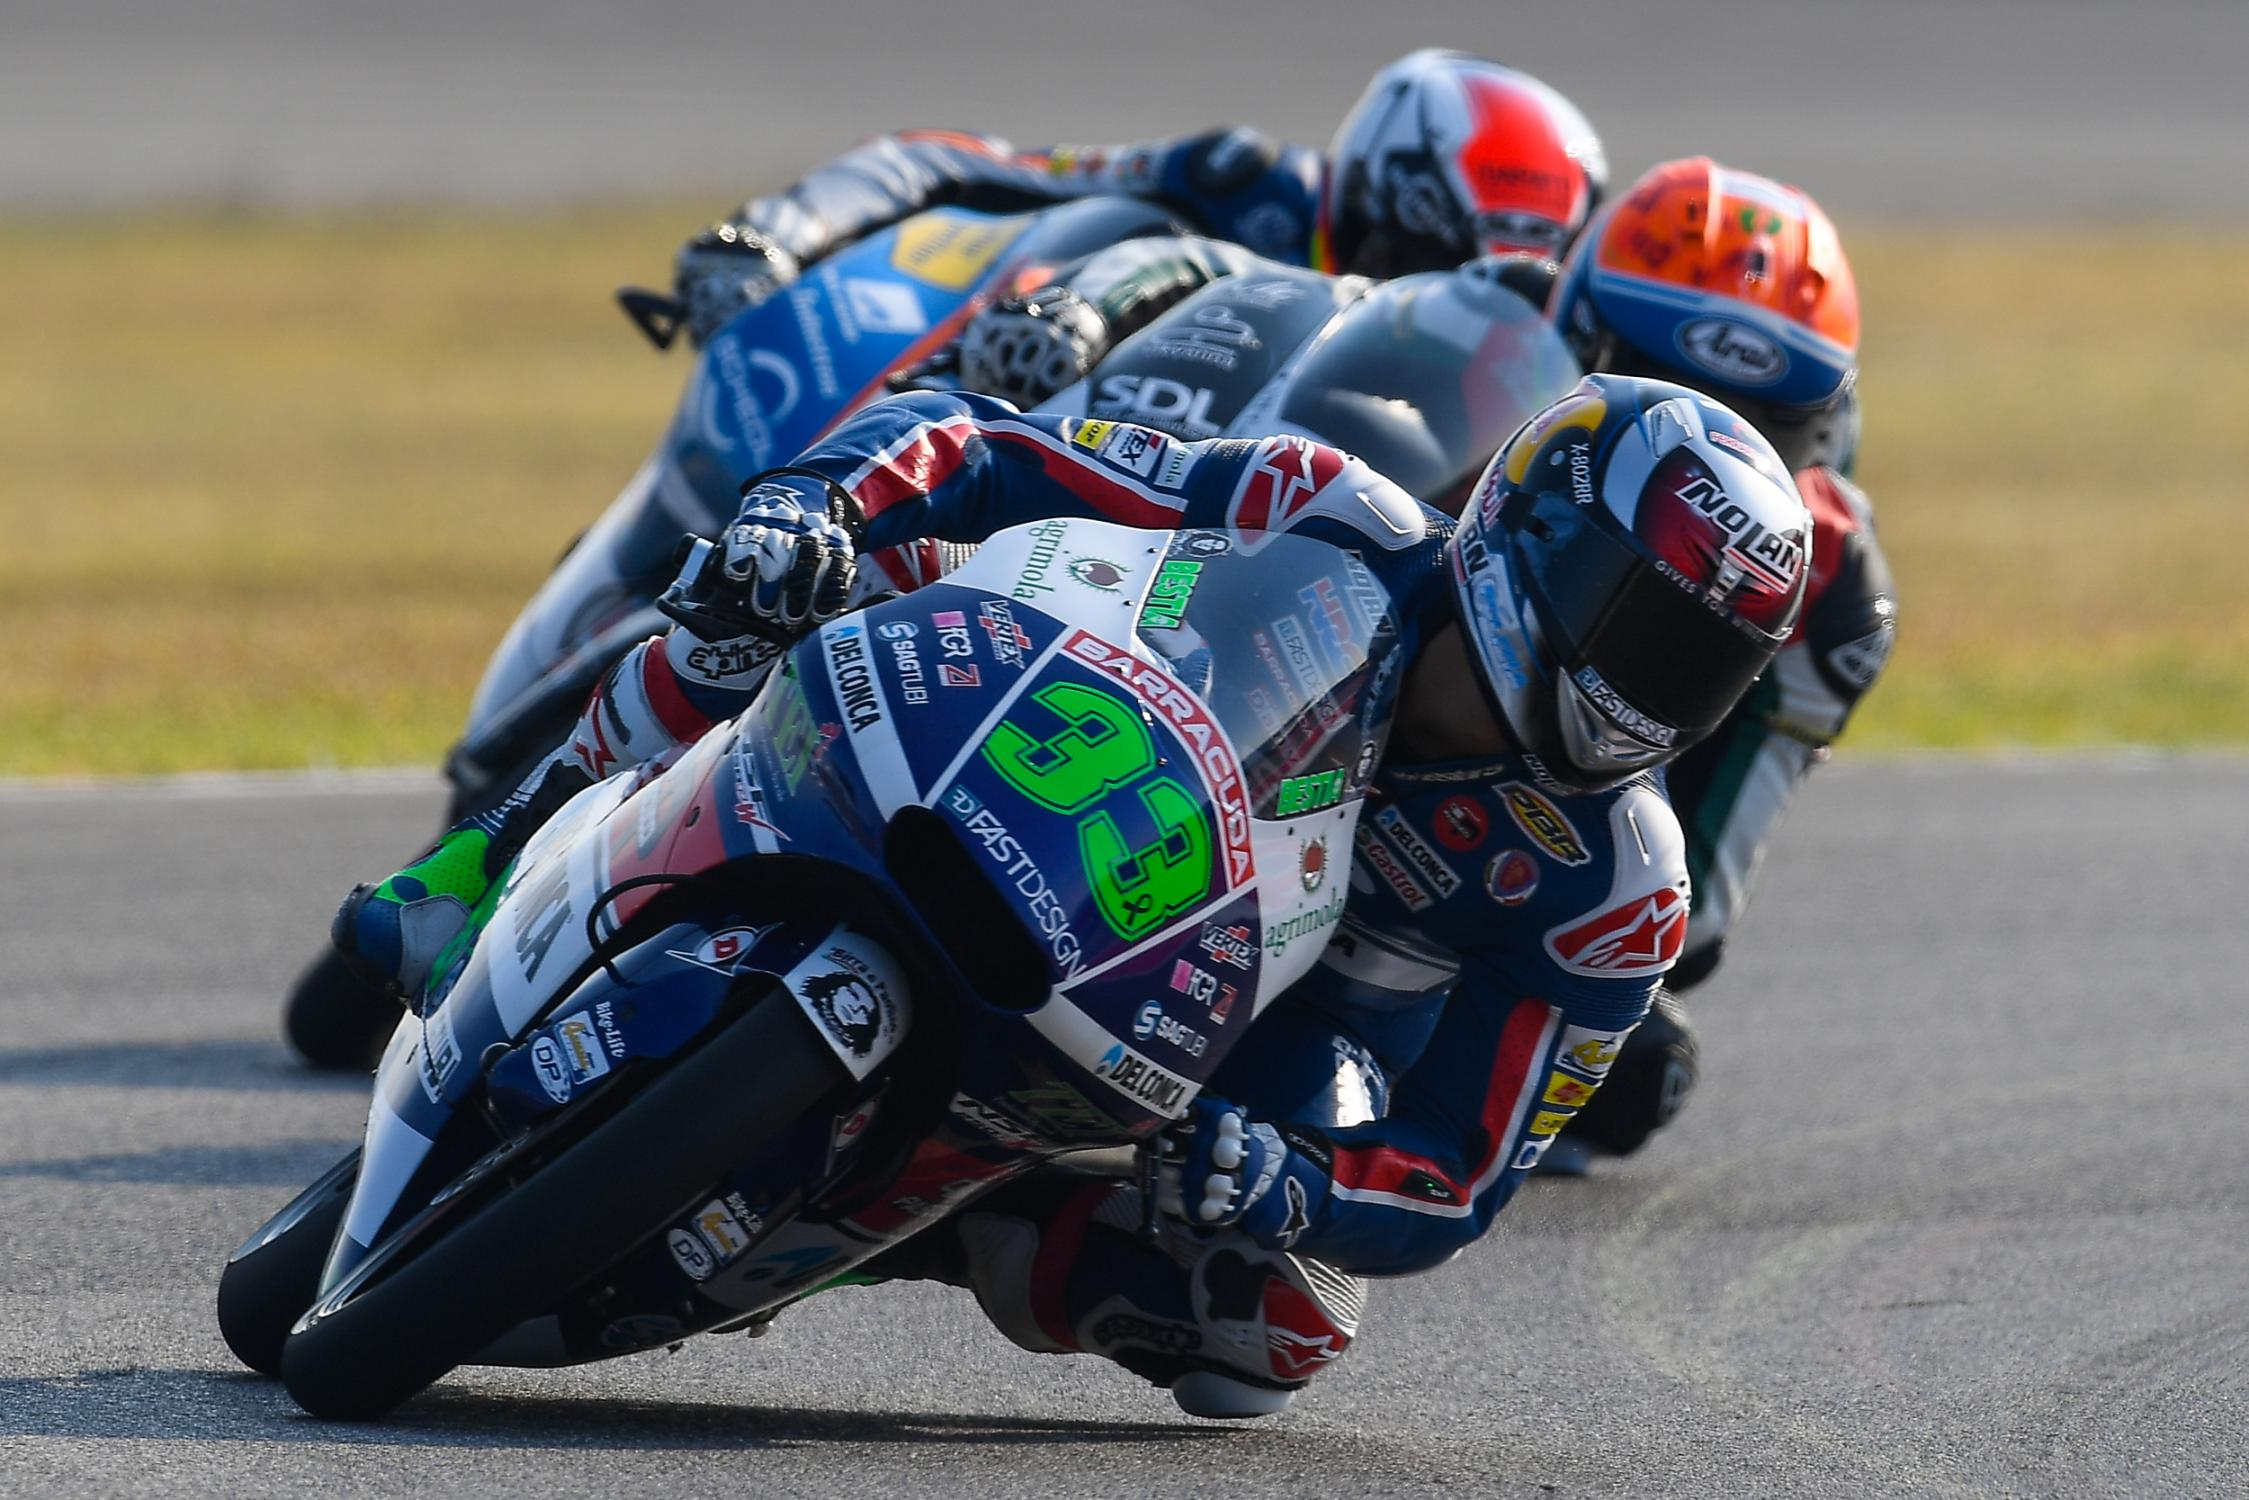 BASTIANINI INTOUCHABLE